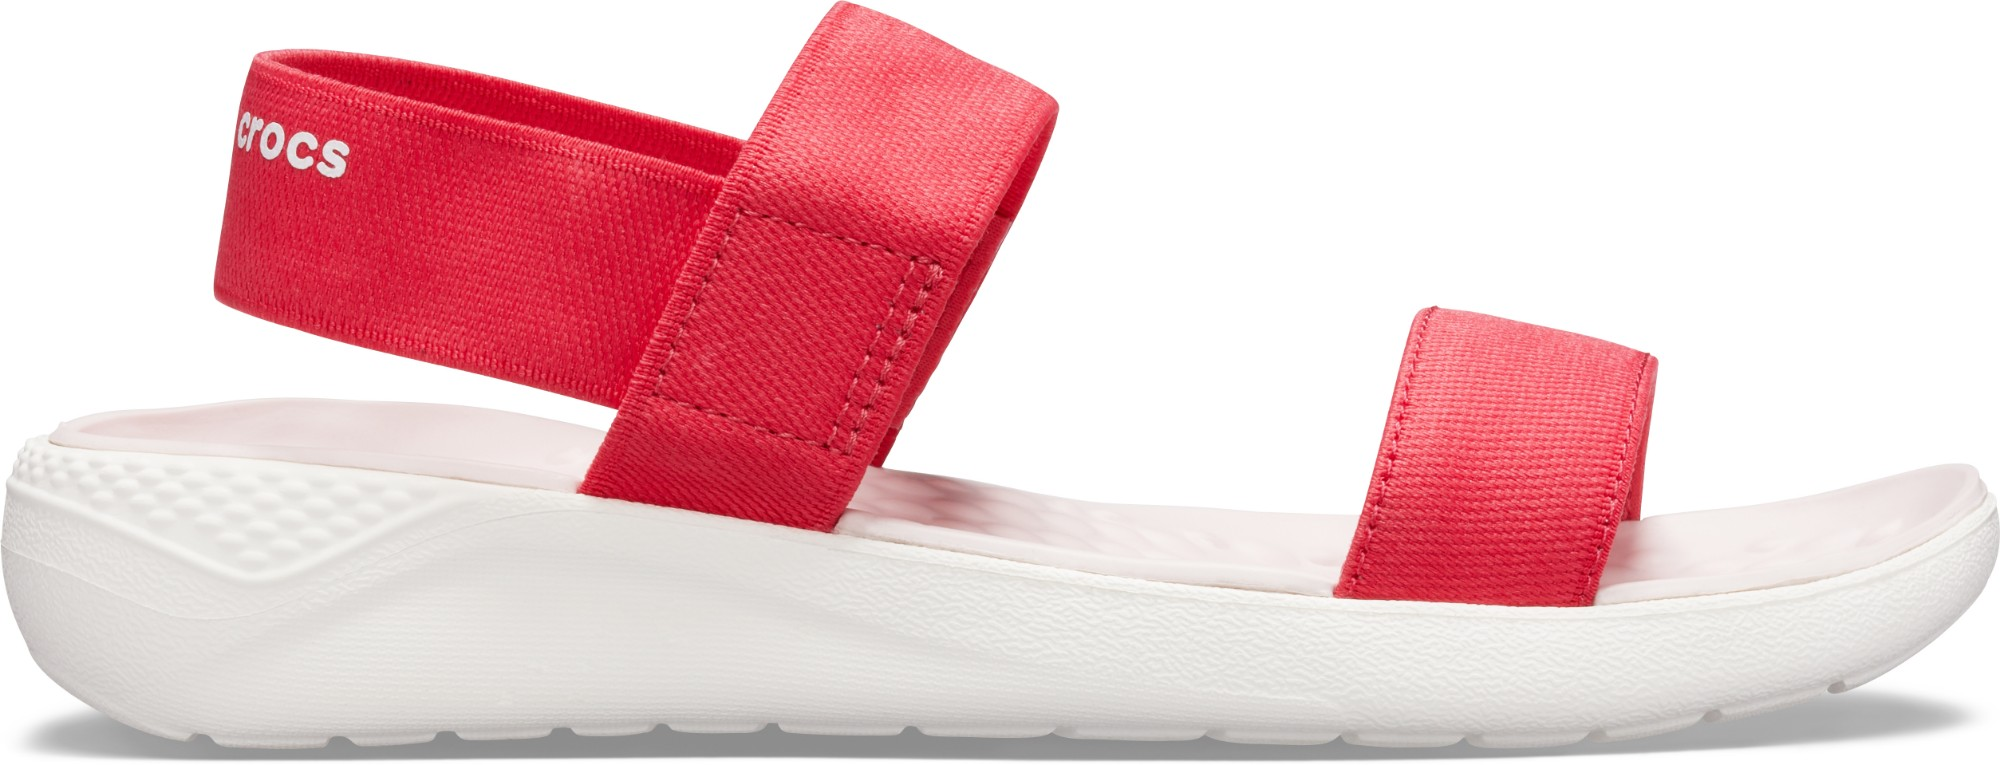 Crocs™ Women's LiteRide Sandal Poppy/White 41